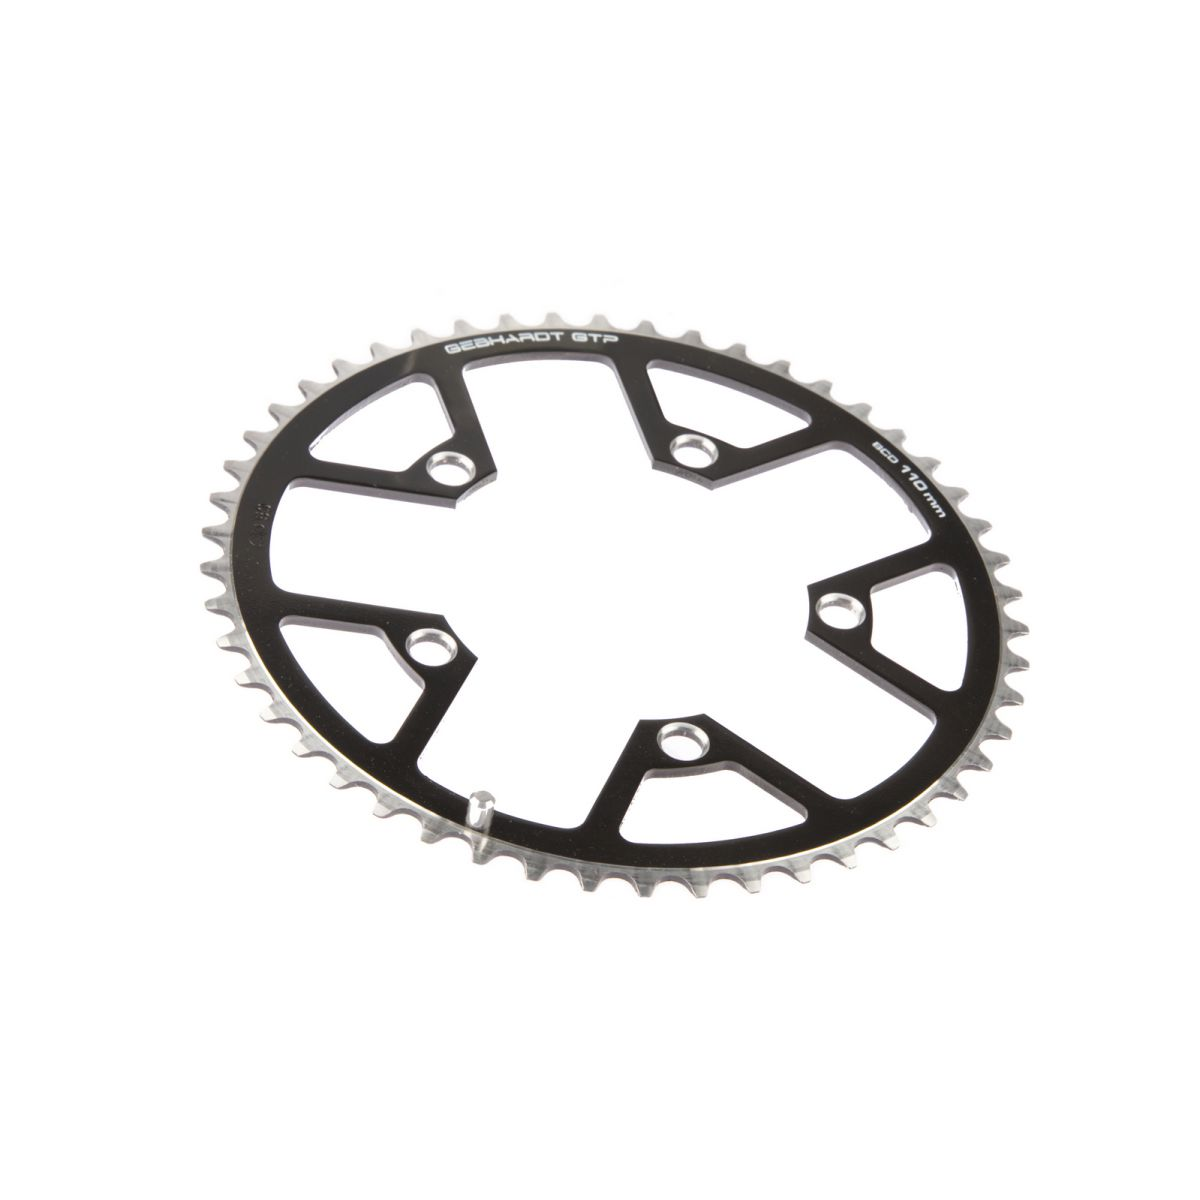 gebhardt chainring classic bcd 110 mm 5hole 42t black